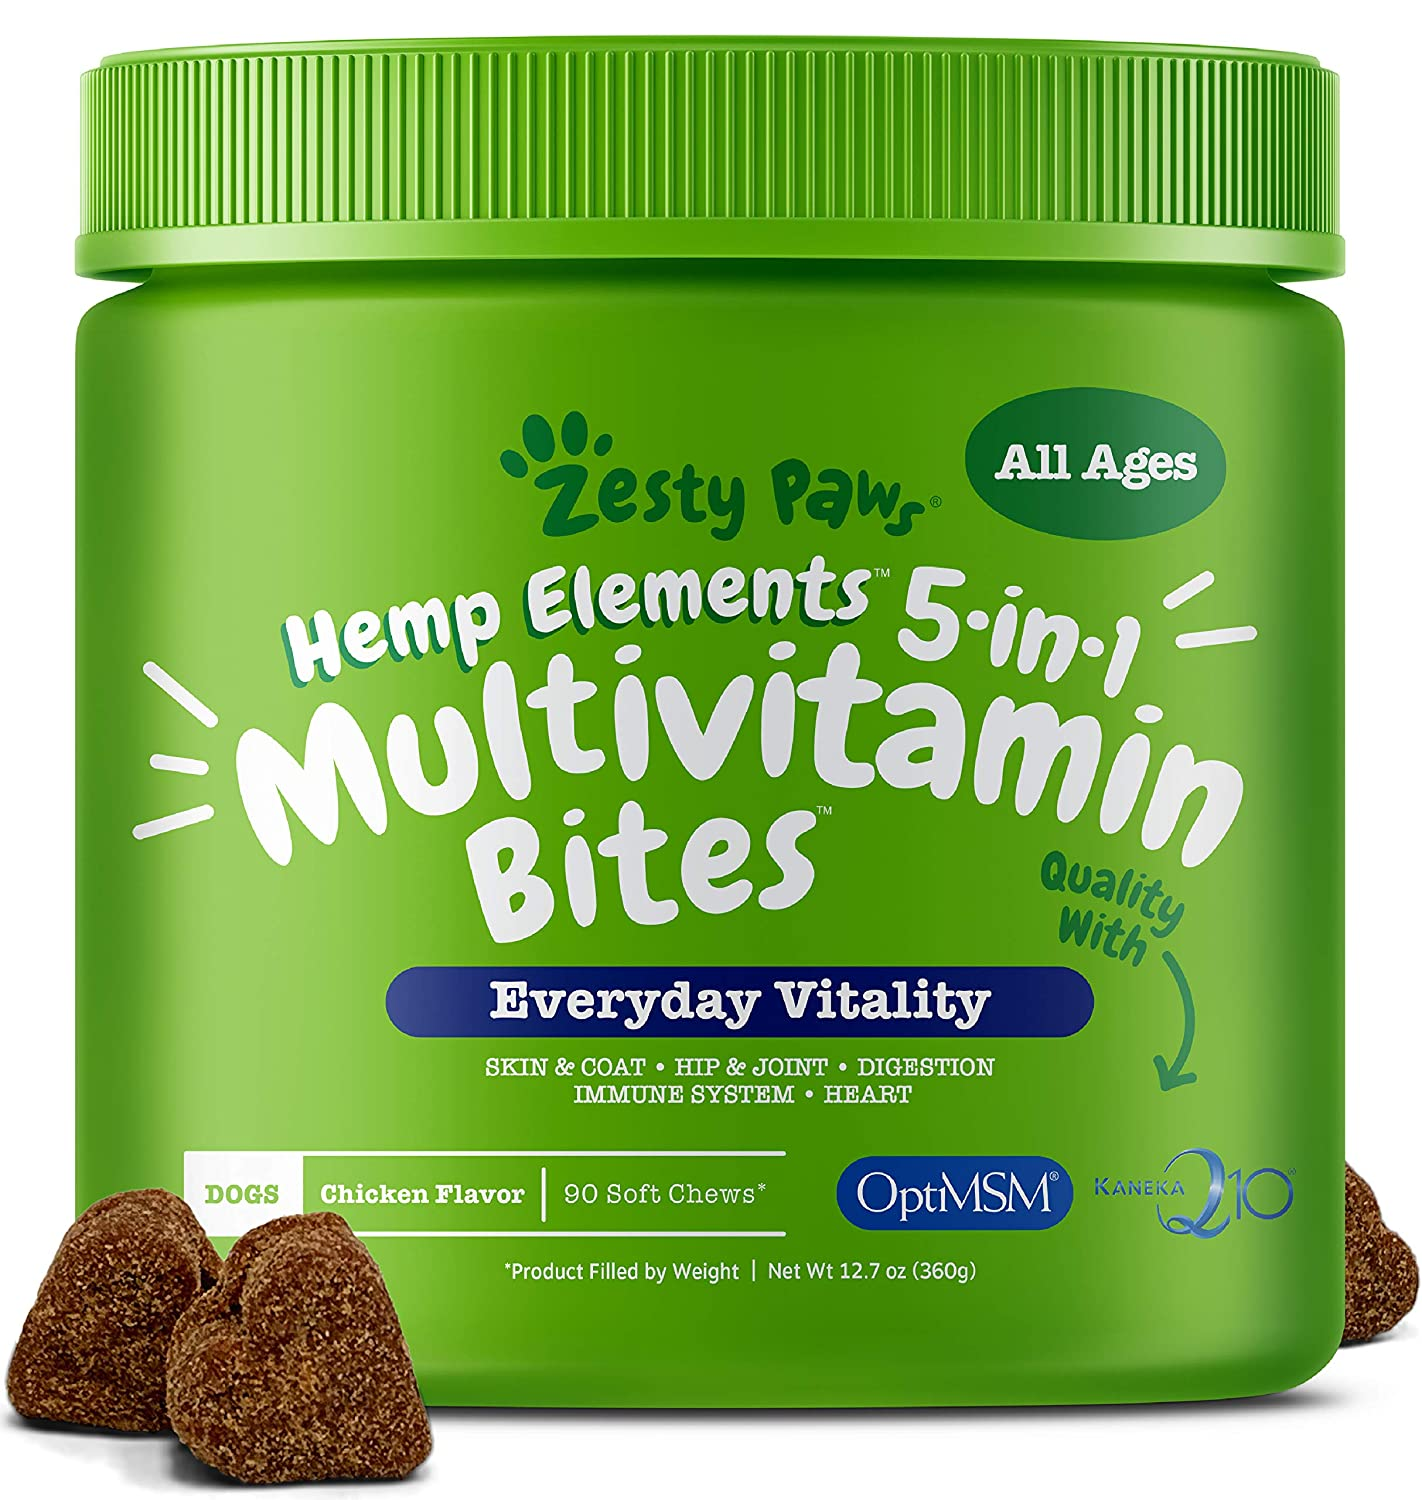 Zesty Paws Multivitamin for Dogs with Hemp - Glucosamine Chondroitin + MSM for Hip & Joint Health - Digestive Enzymes & Probiotics for Digestion - Vitamins & Omega 3 for Skin & Coat + Heart & Immune